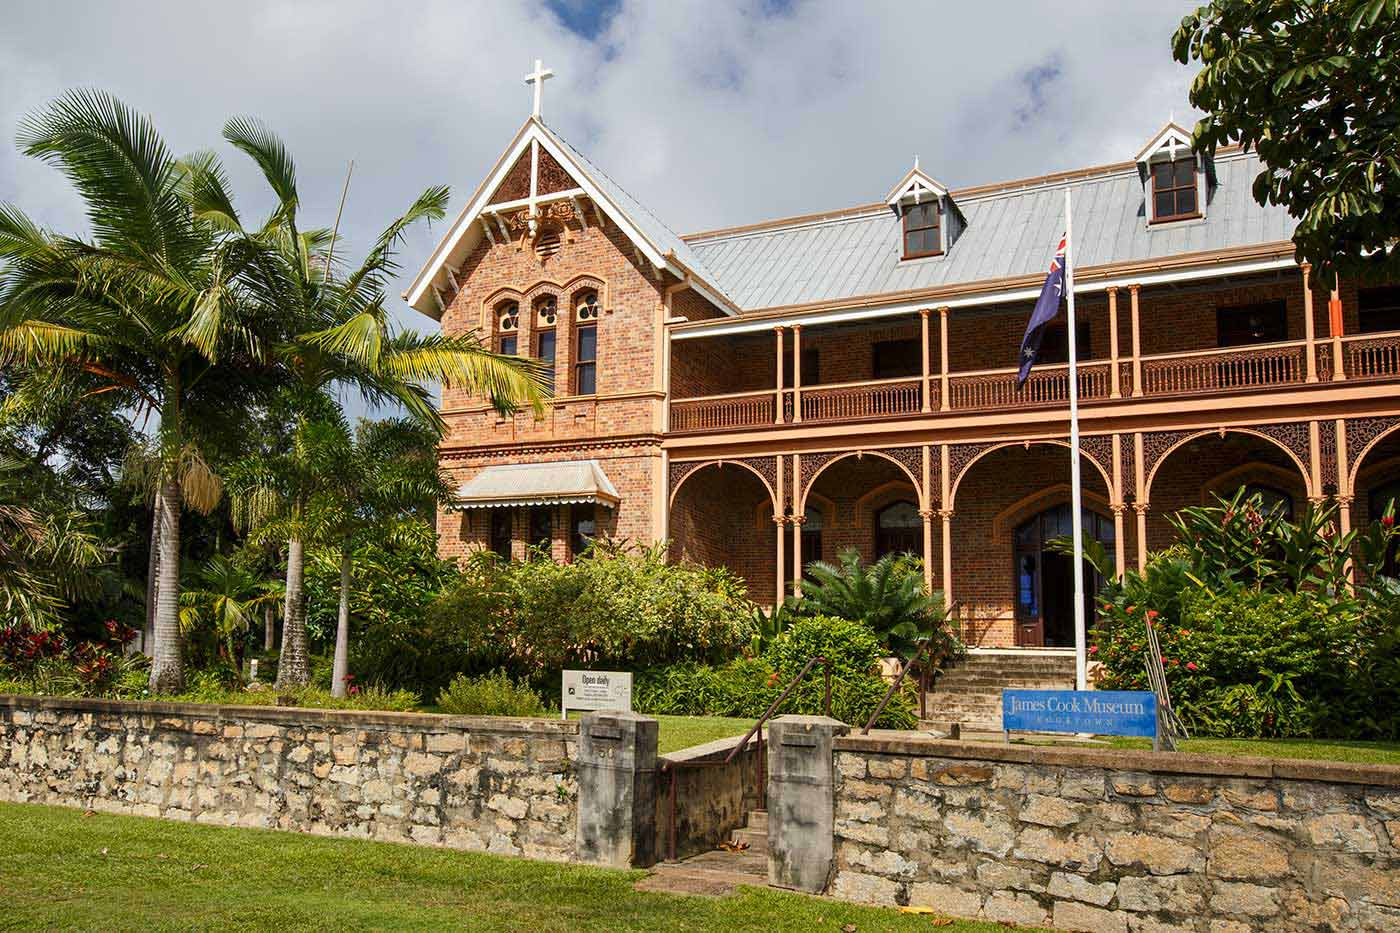 Exterior photoraph of the James Cook Museum - click to view larger image